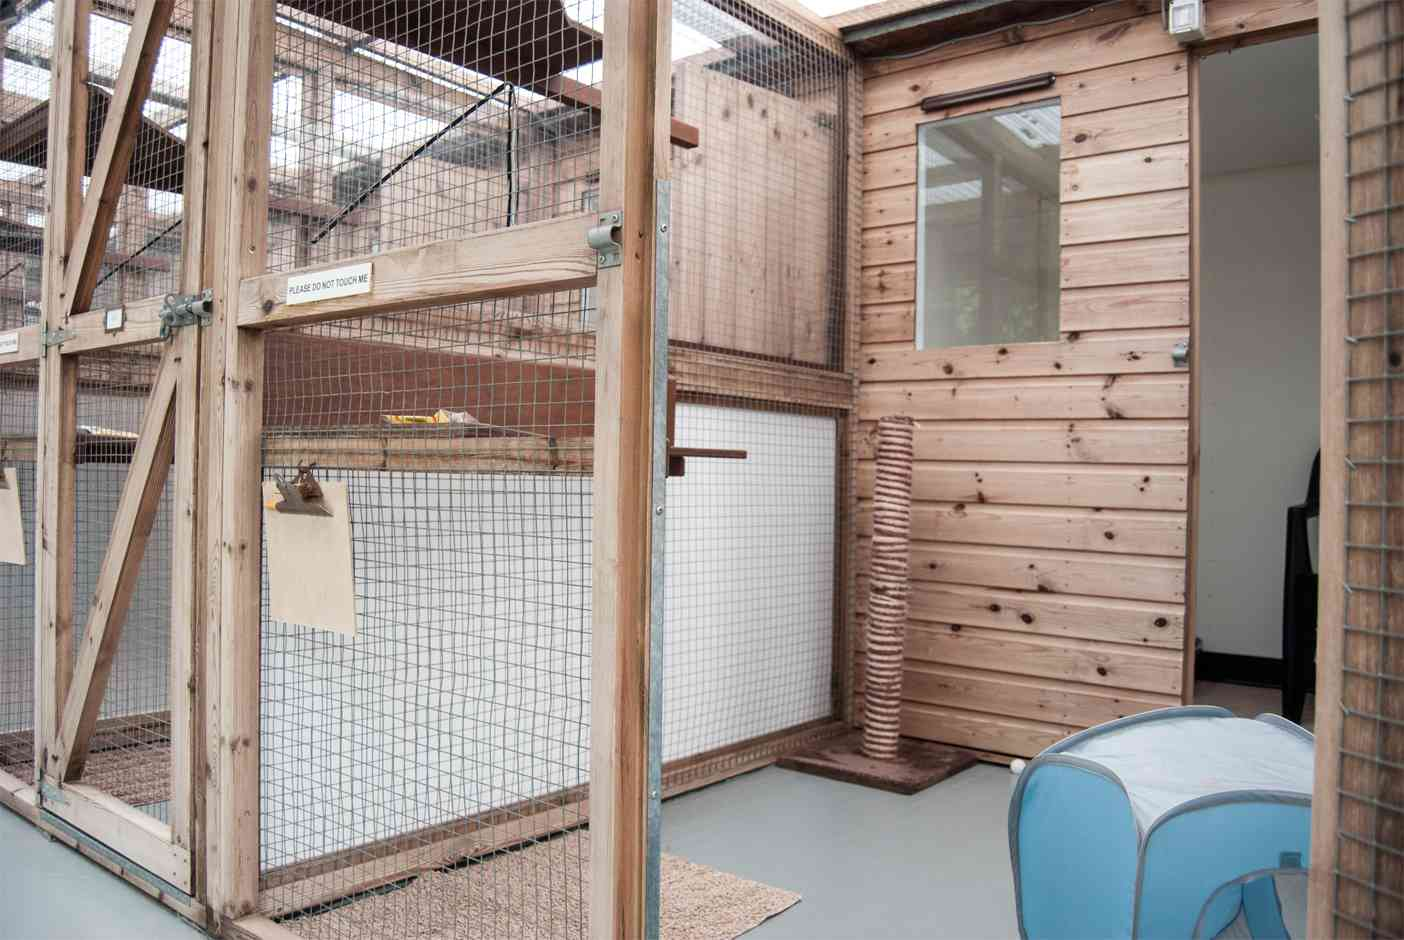 A cabin suitable for 1-2 cats sharing from same household